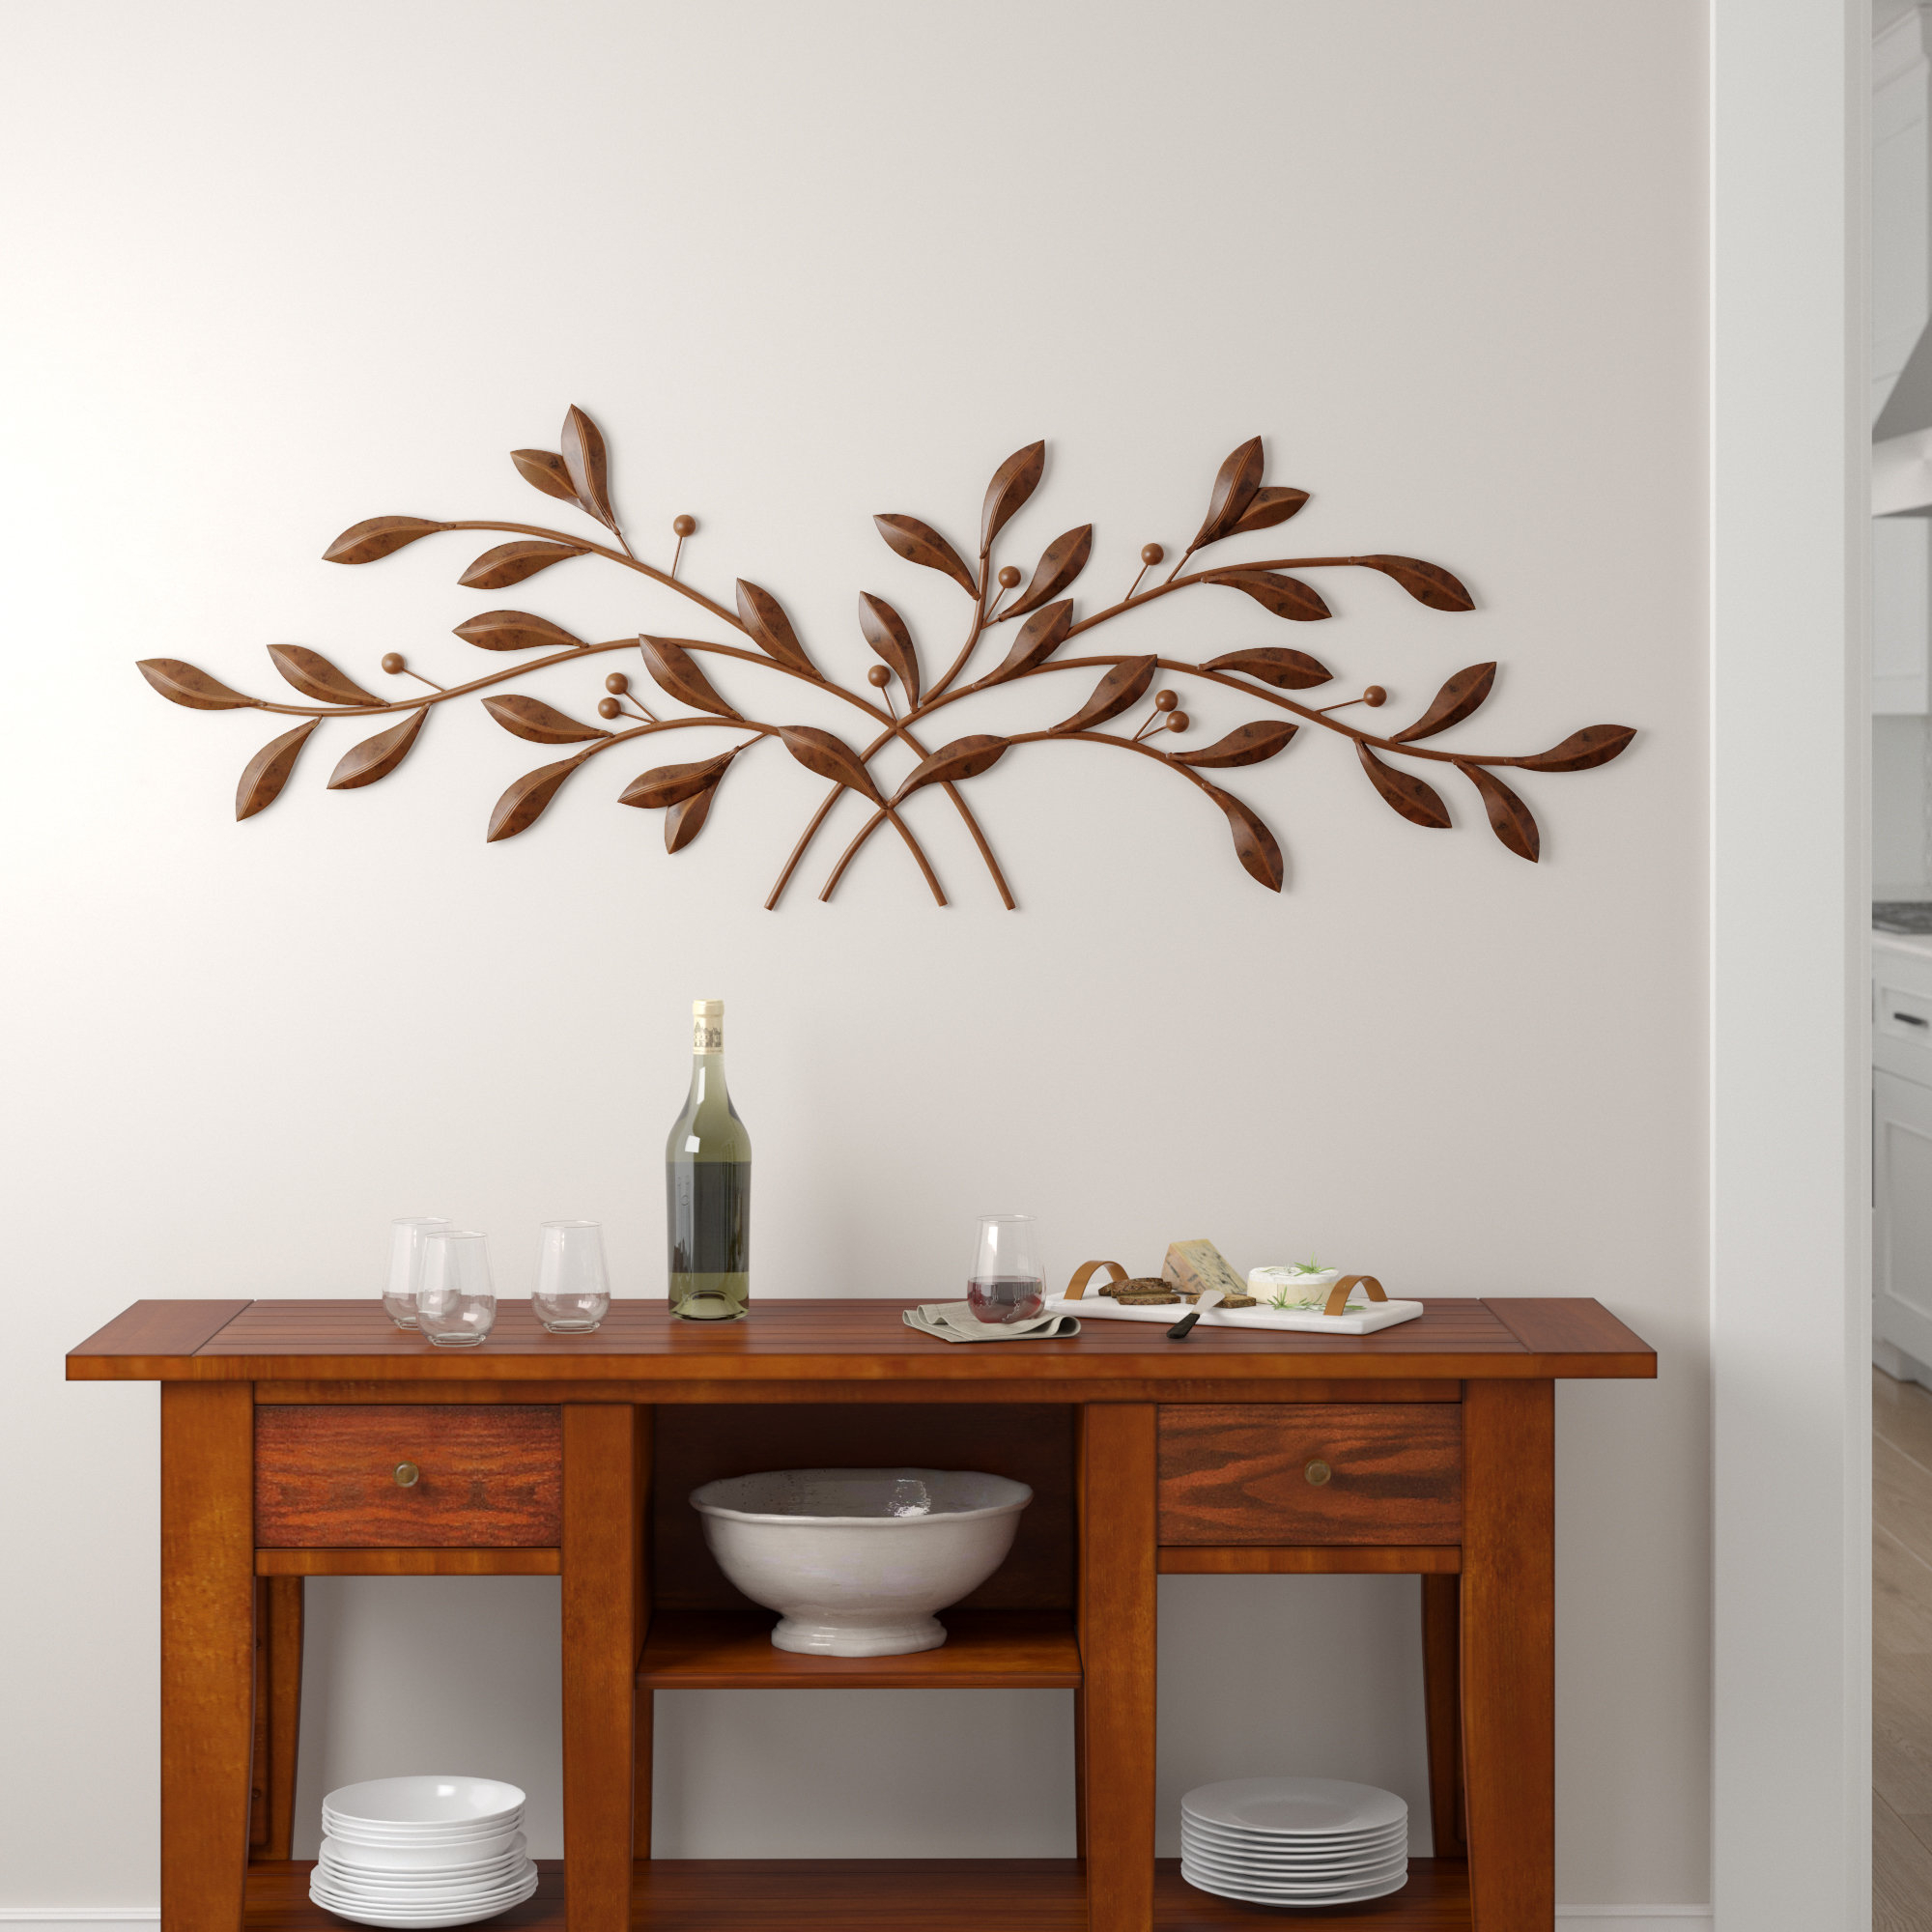 Raheem Flowers Metal Wall Decor By Alcott Hill With Famous Red Barrel Studio Metal Leaf With Berries Wall Décor & Reviews (View 11 of 20)